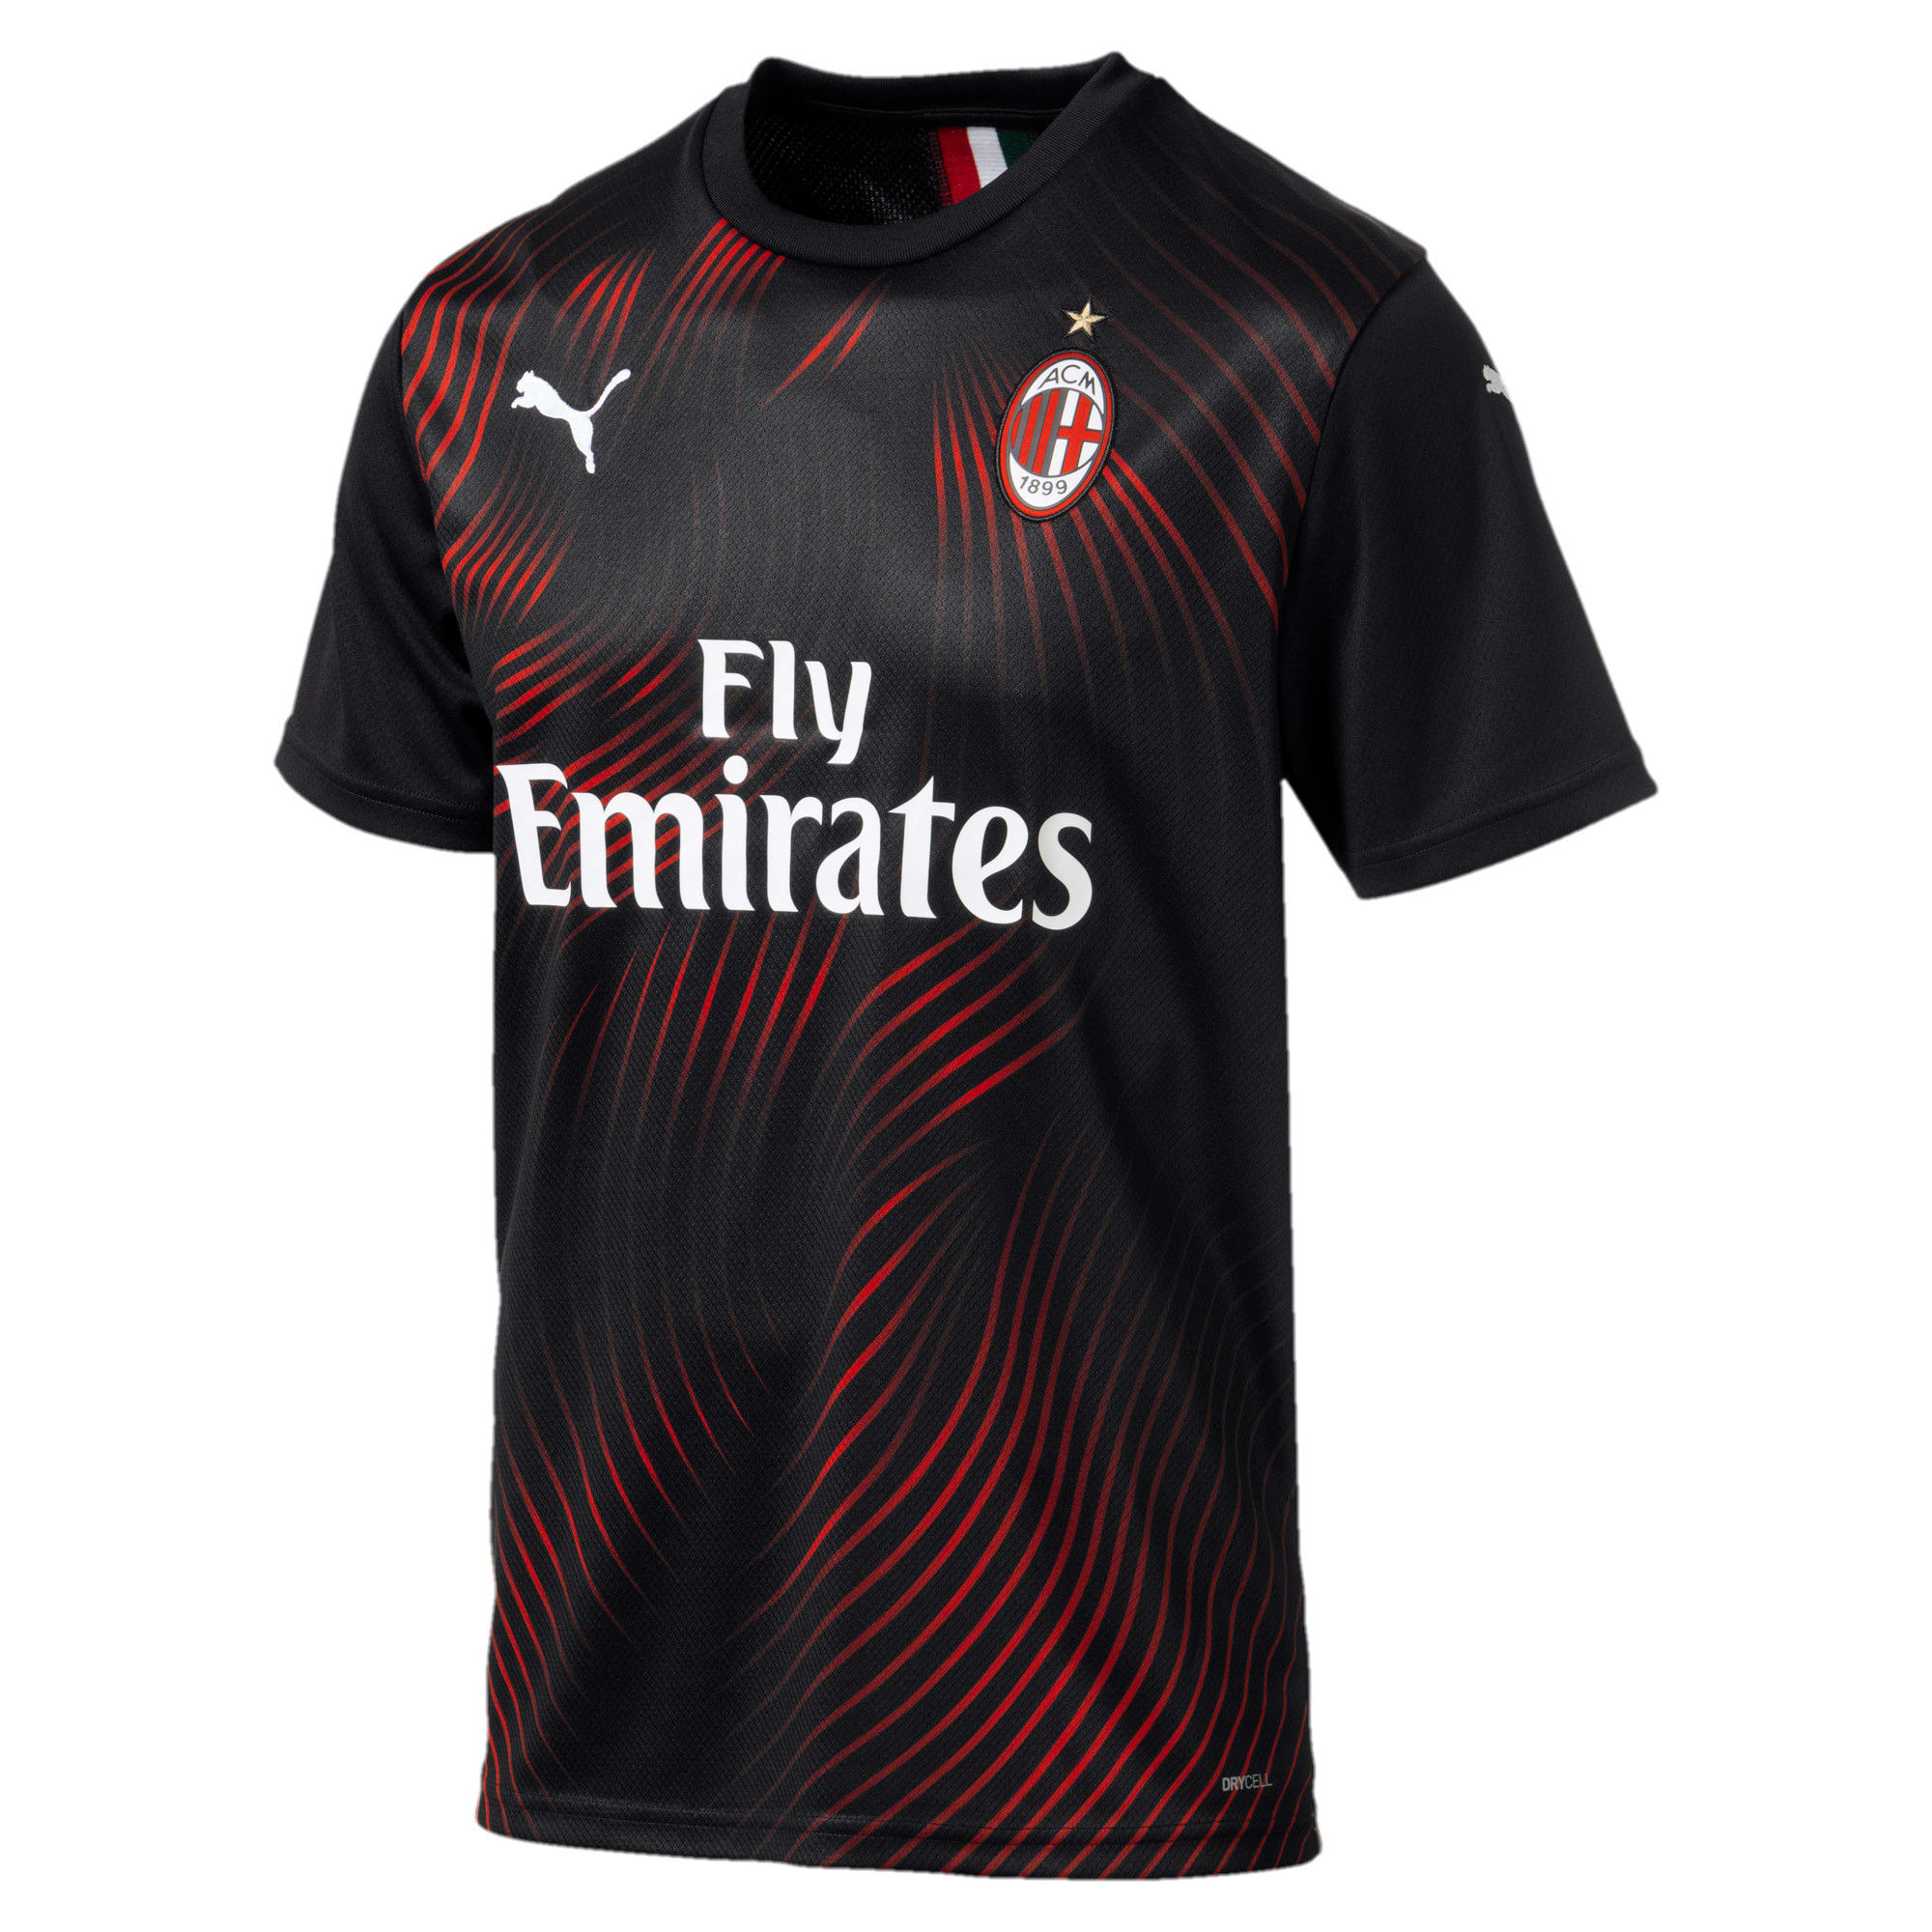 Thumbnail 1 of AC Milan Men's Third Replica Jersey, Puma Black-Tango Red, medium